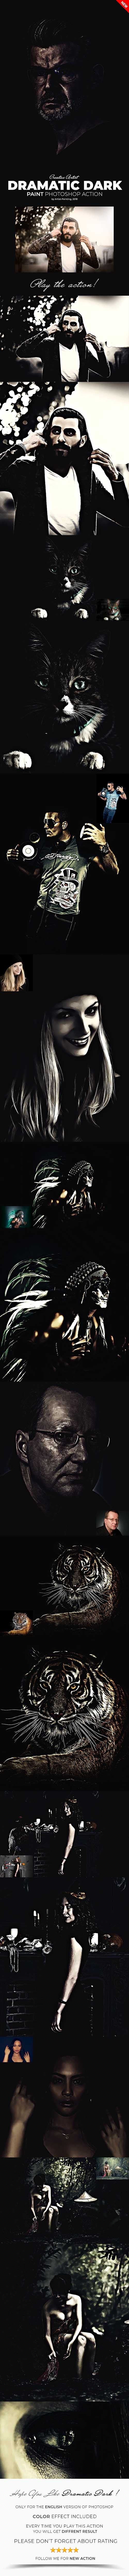 GraphicRiver - Dramatic Dark Paint Photoshop Action 22299205